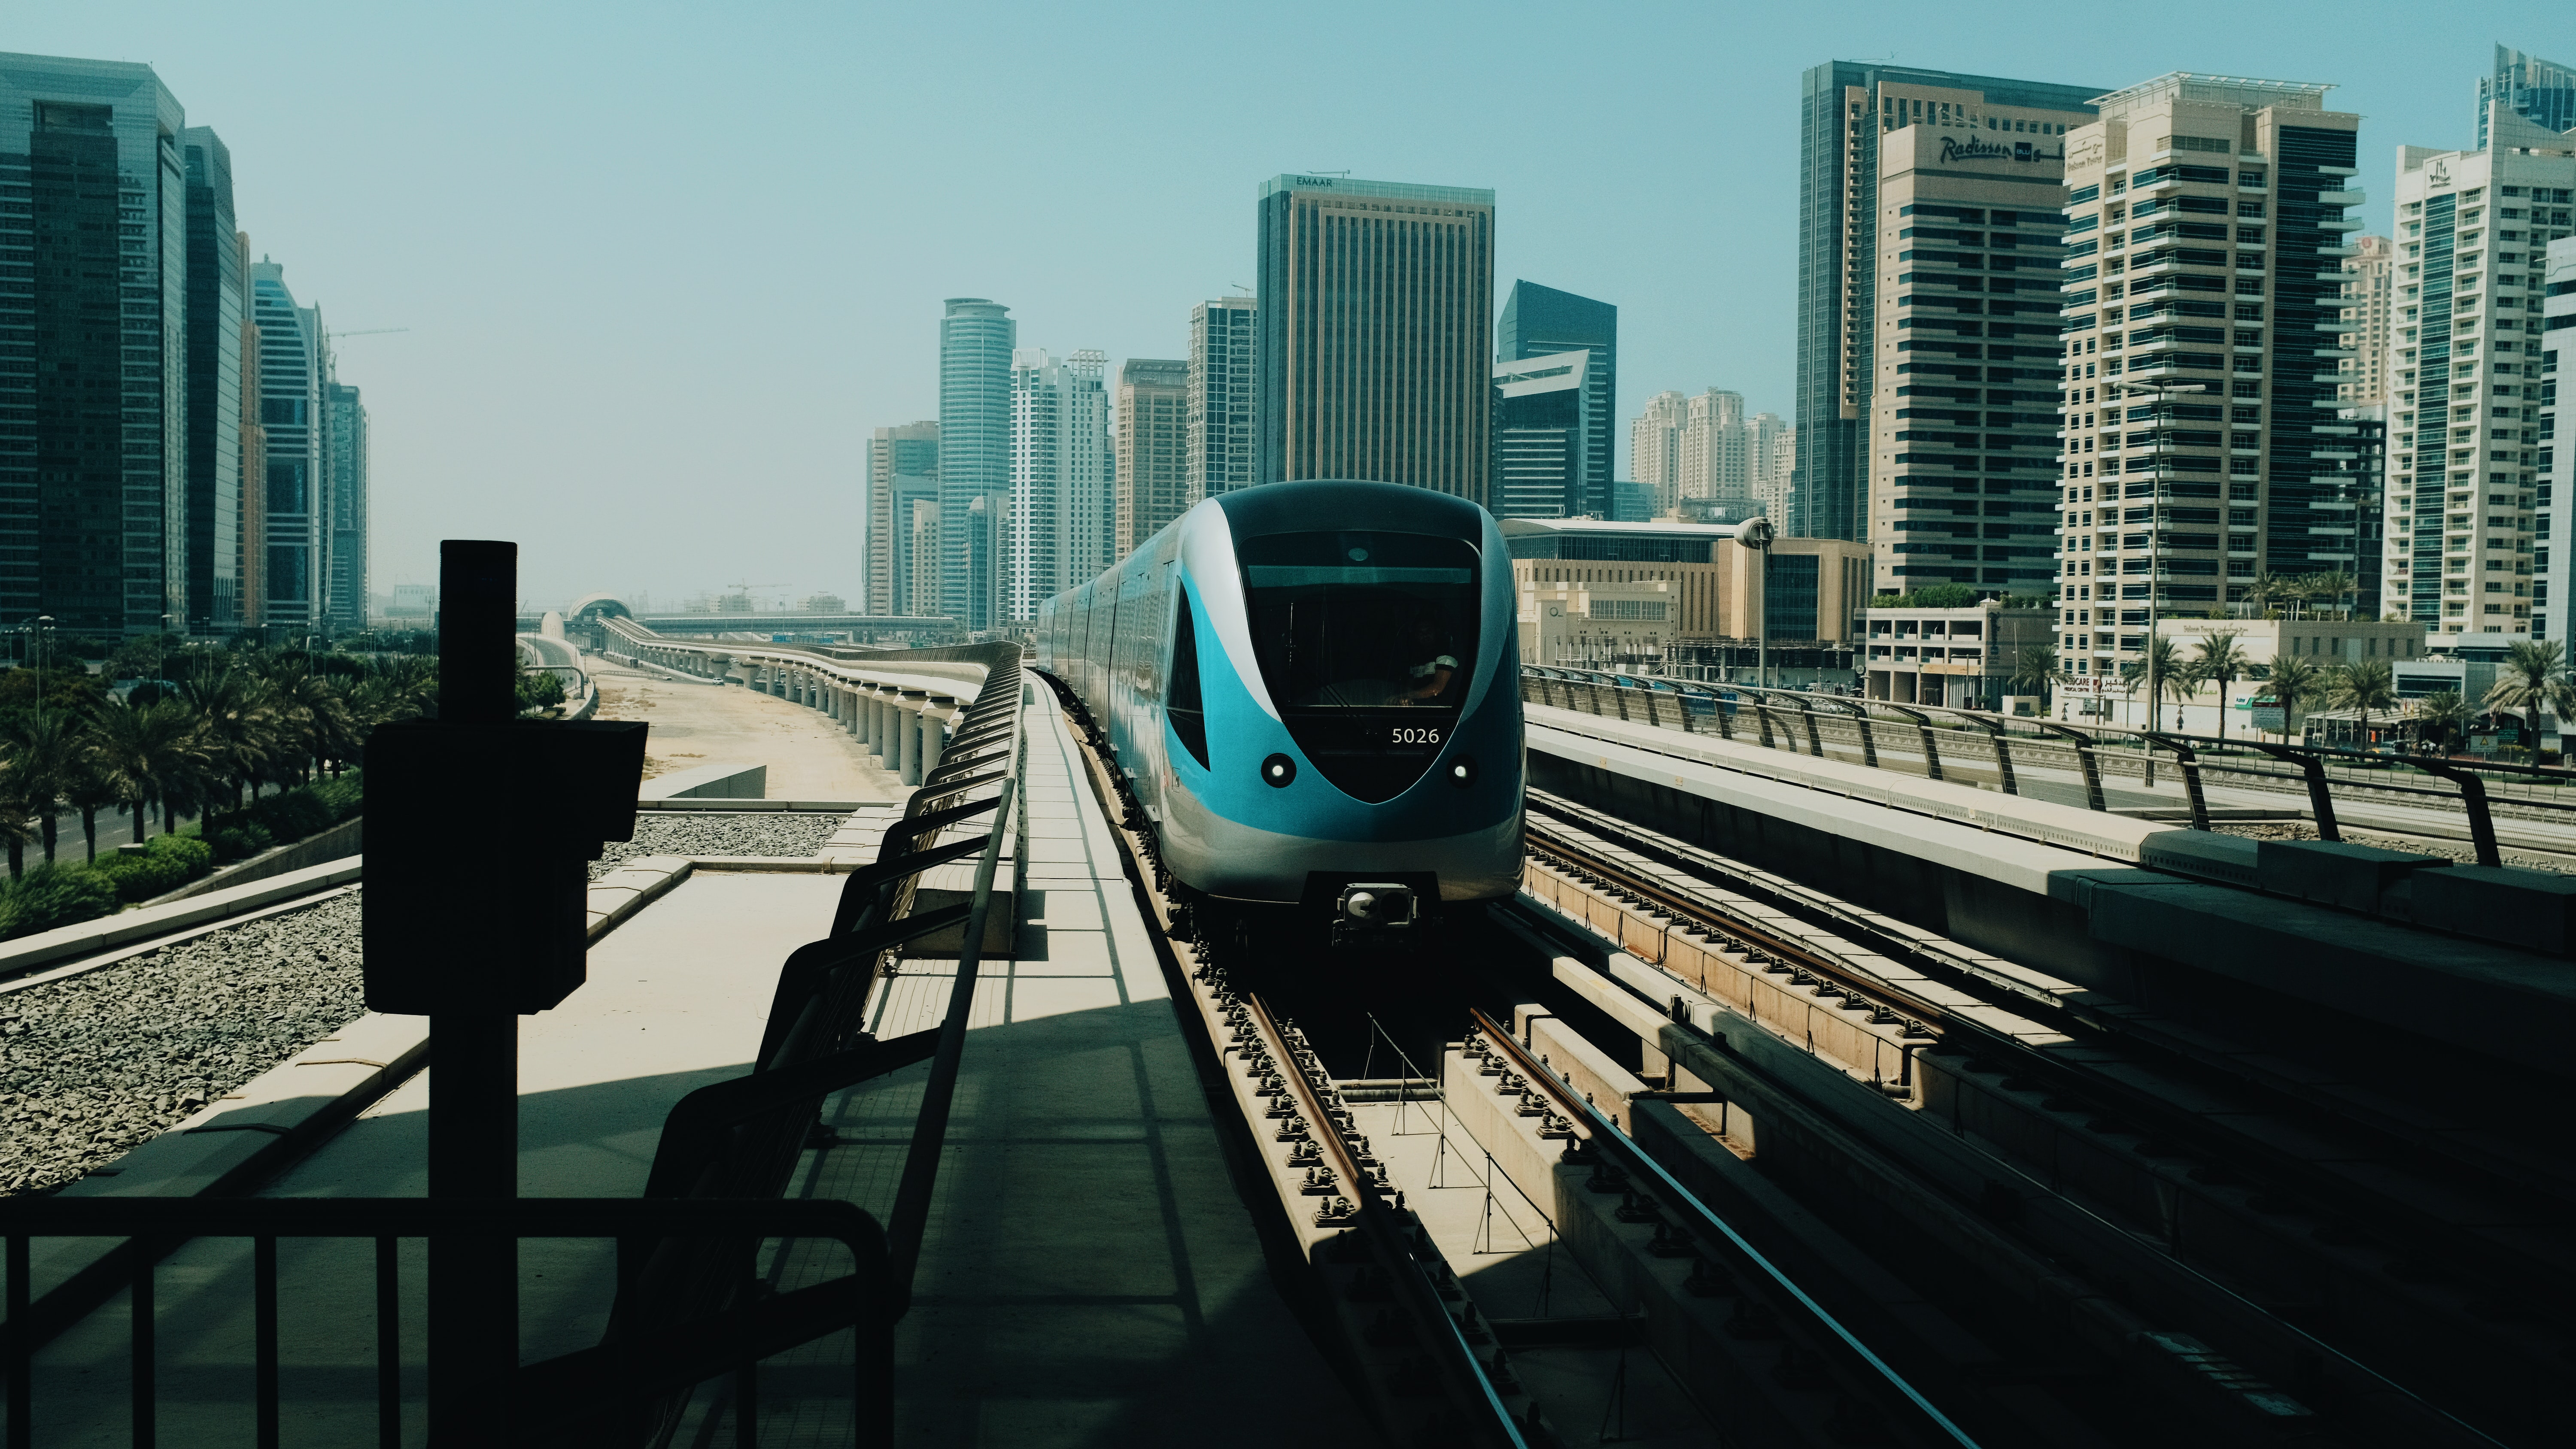 E-Signature - From monorail to the next big thing